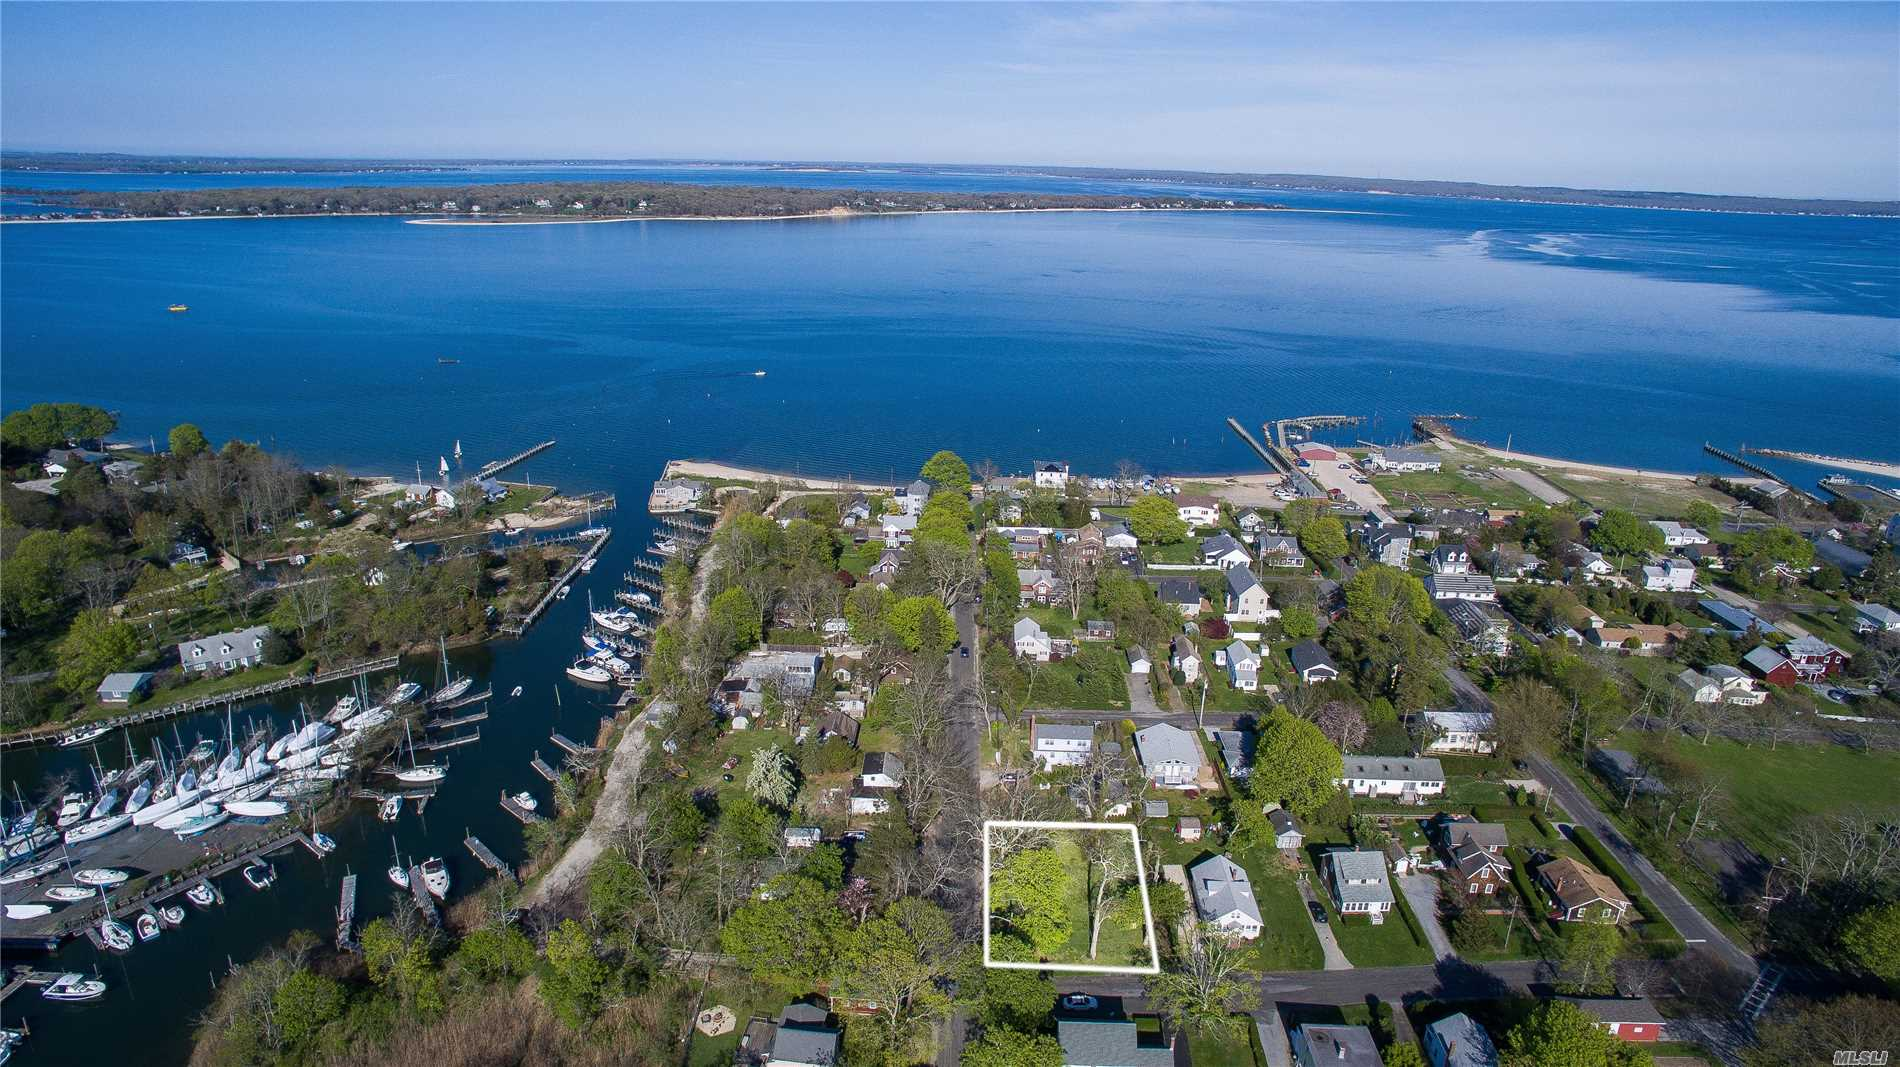 Build Your Dream Cottage In New Suffolk's Seaside Community. Enjoy Small Town Quaintness In This Picturesque Quintessential Location. A Short Distance To Beautiful White Sandy Beach With Boat Launching Ramp And Ample Parking Facilities. Close To Vineyards, Restaurants, And Farm Stands.